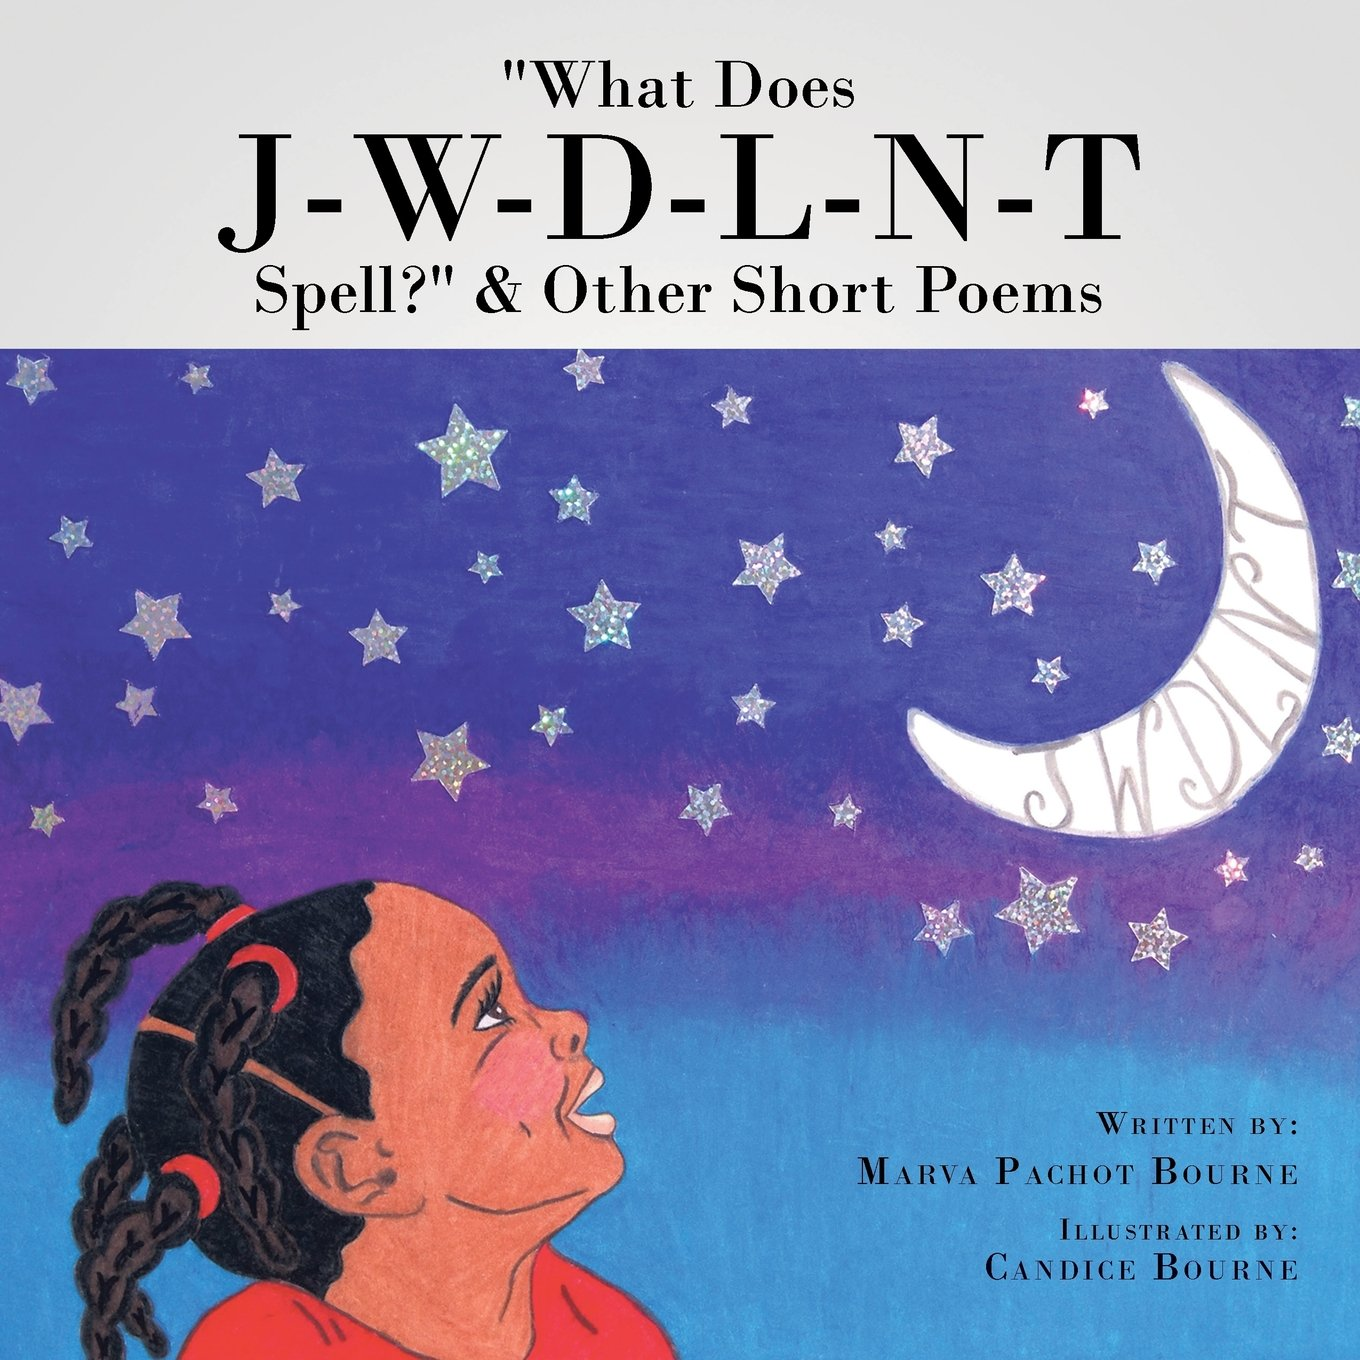 """""""What Does J-W-D-L-N-T Spell?"""" & Other Short Poems"""